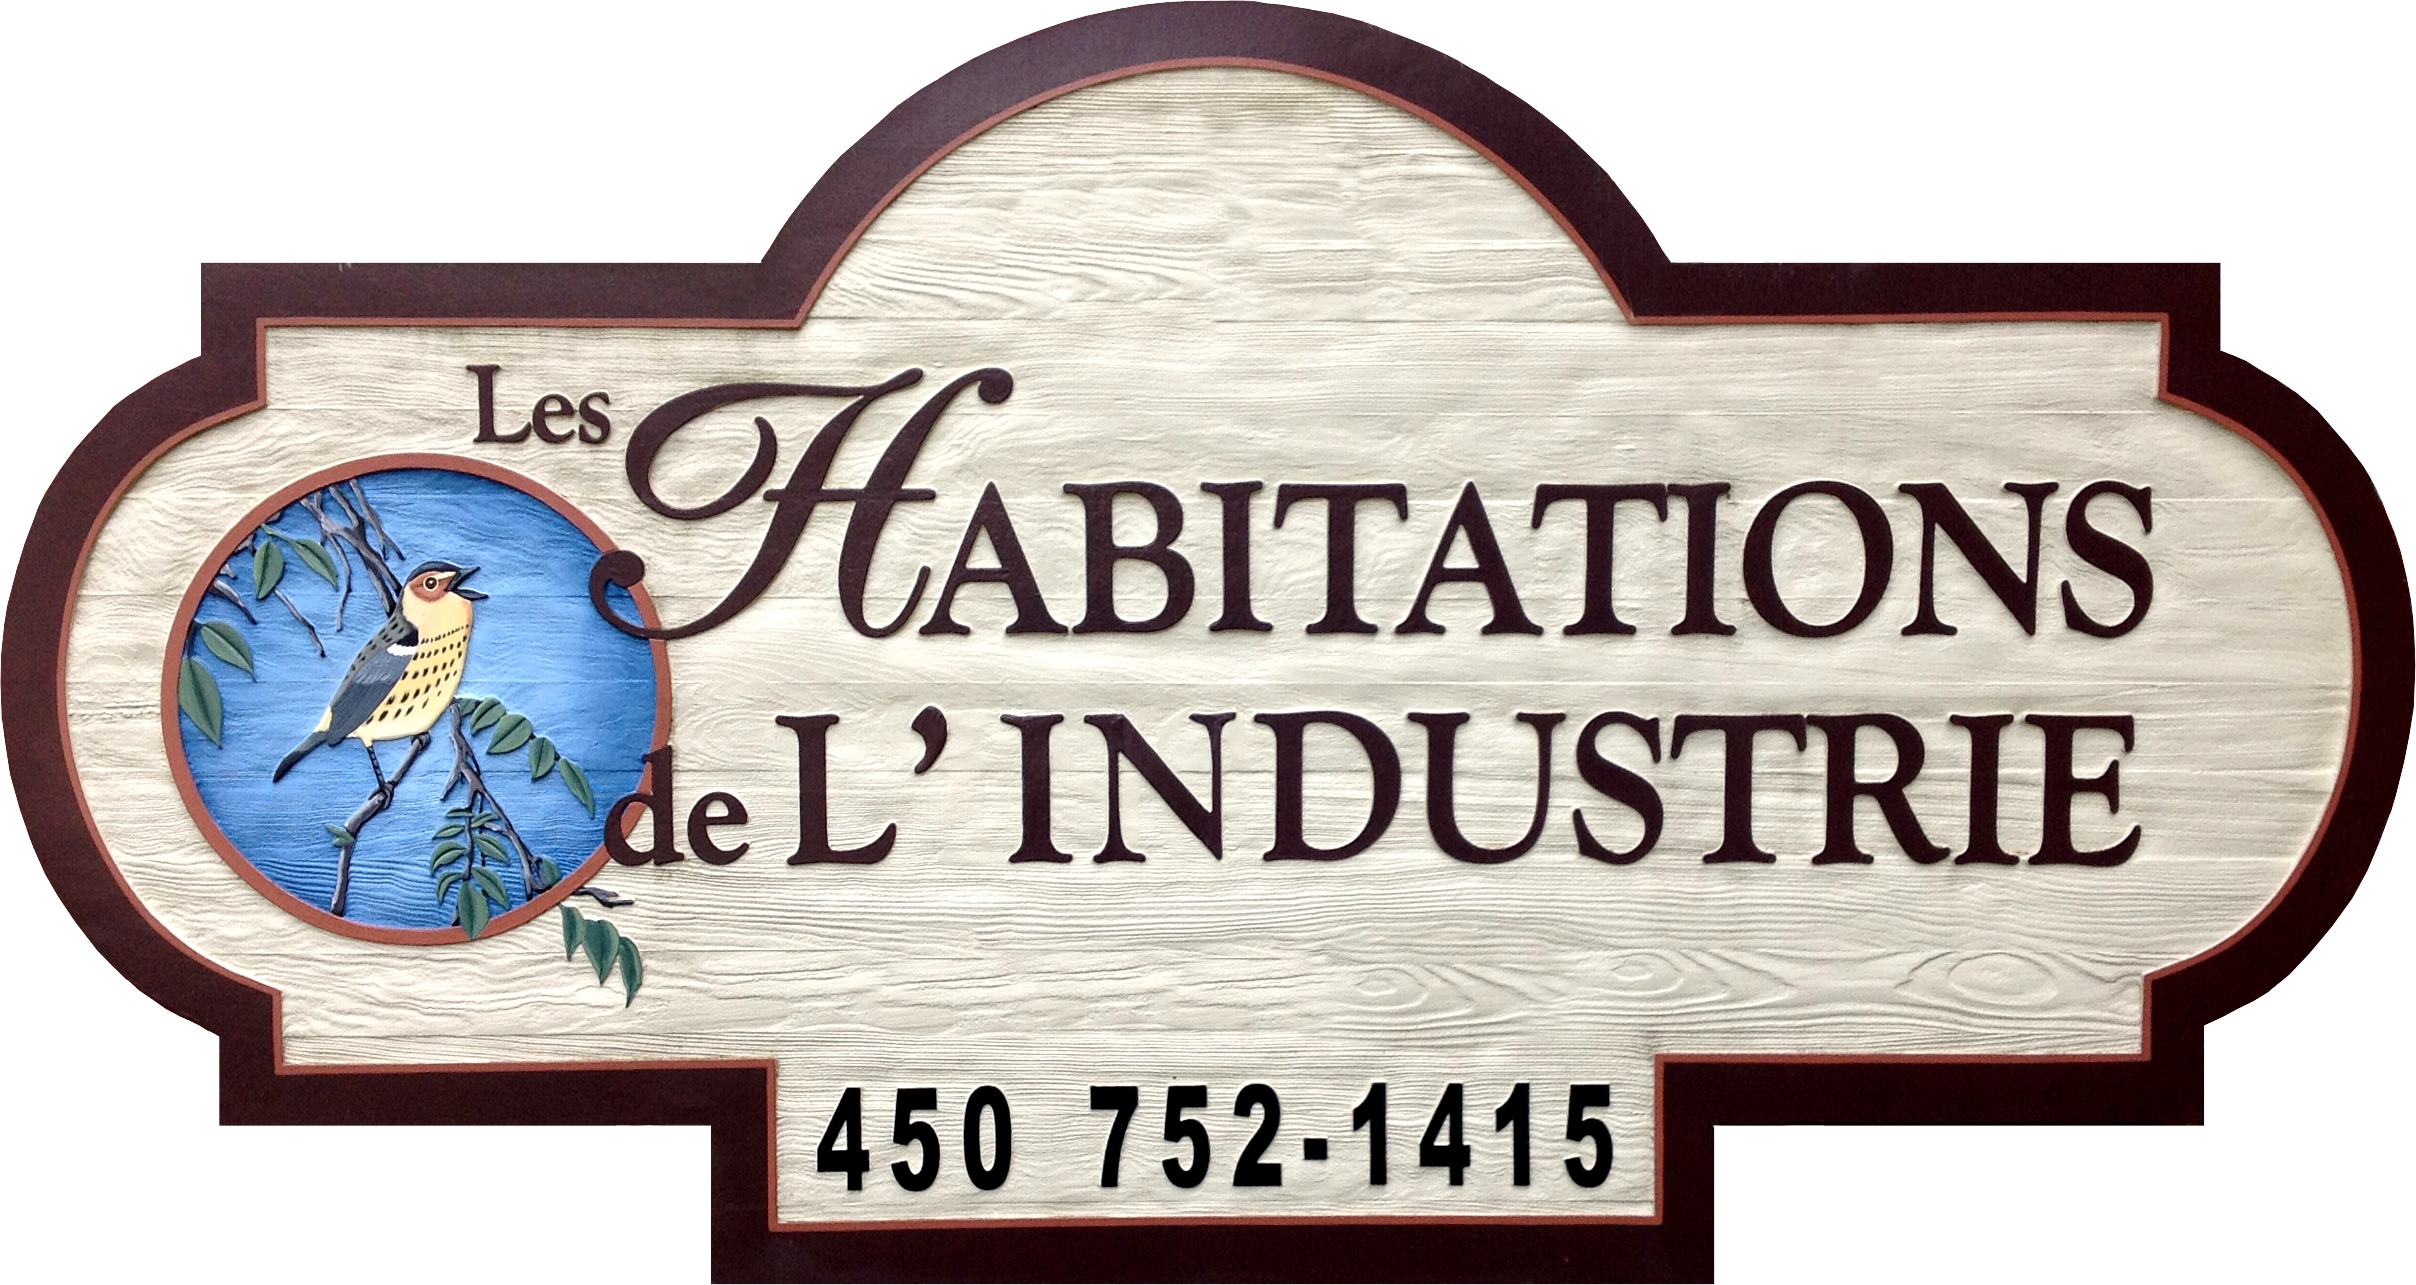 LES HABITATIONS DE L'INDUSTRIE INC.